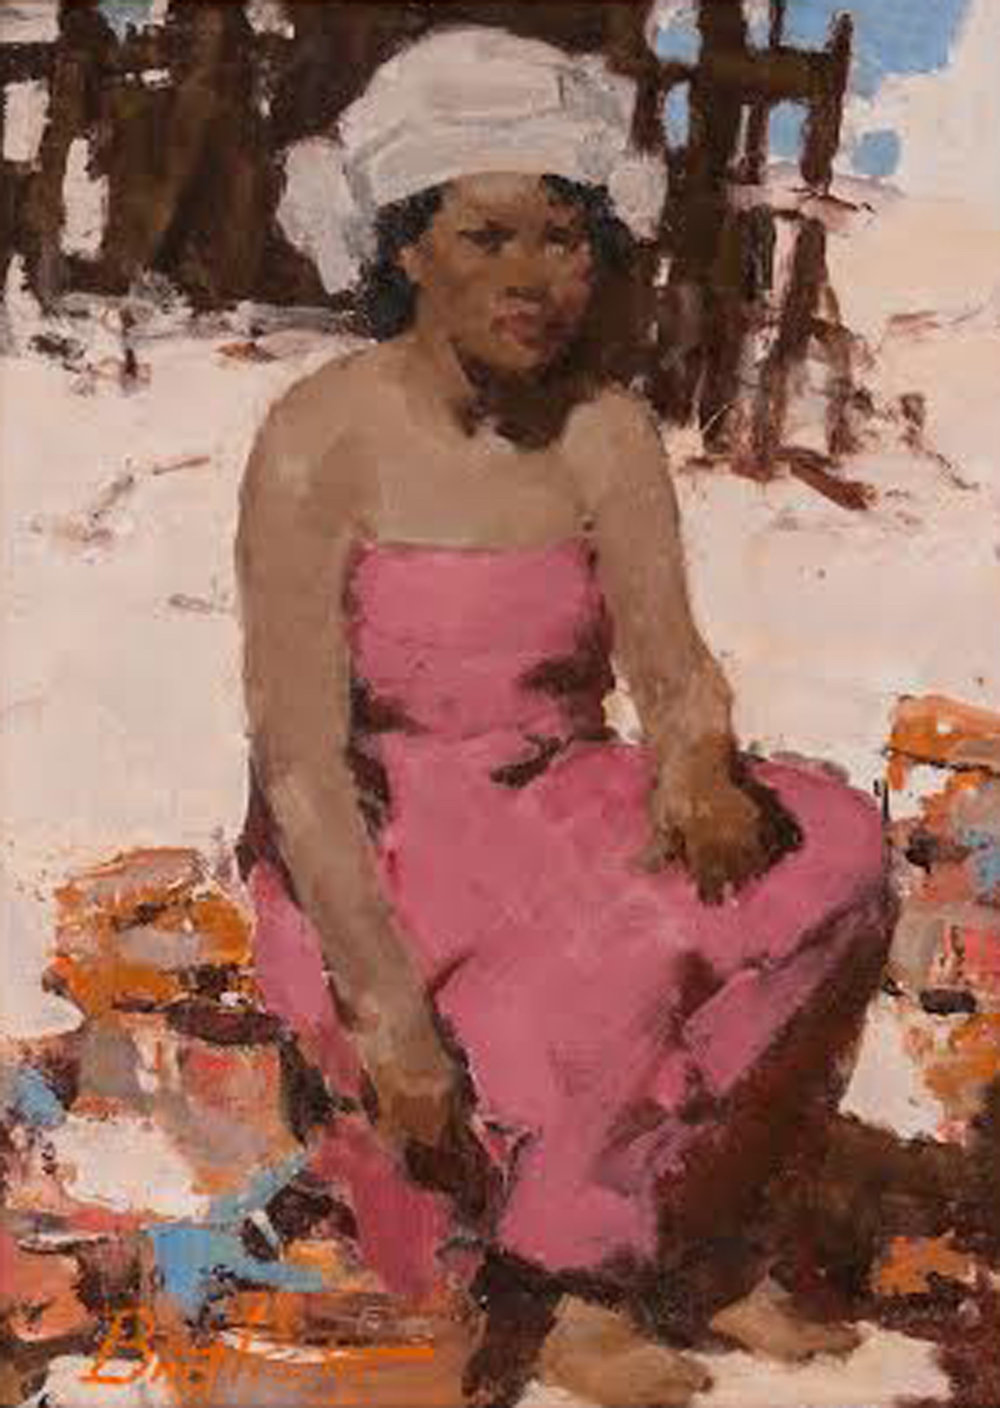 The Pink Dress, 16 x 12, oil on board